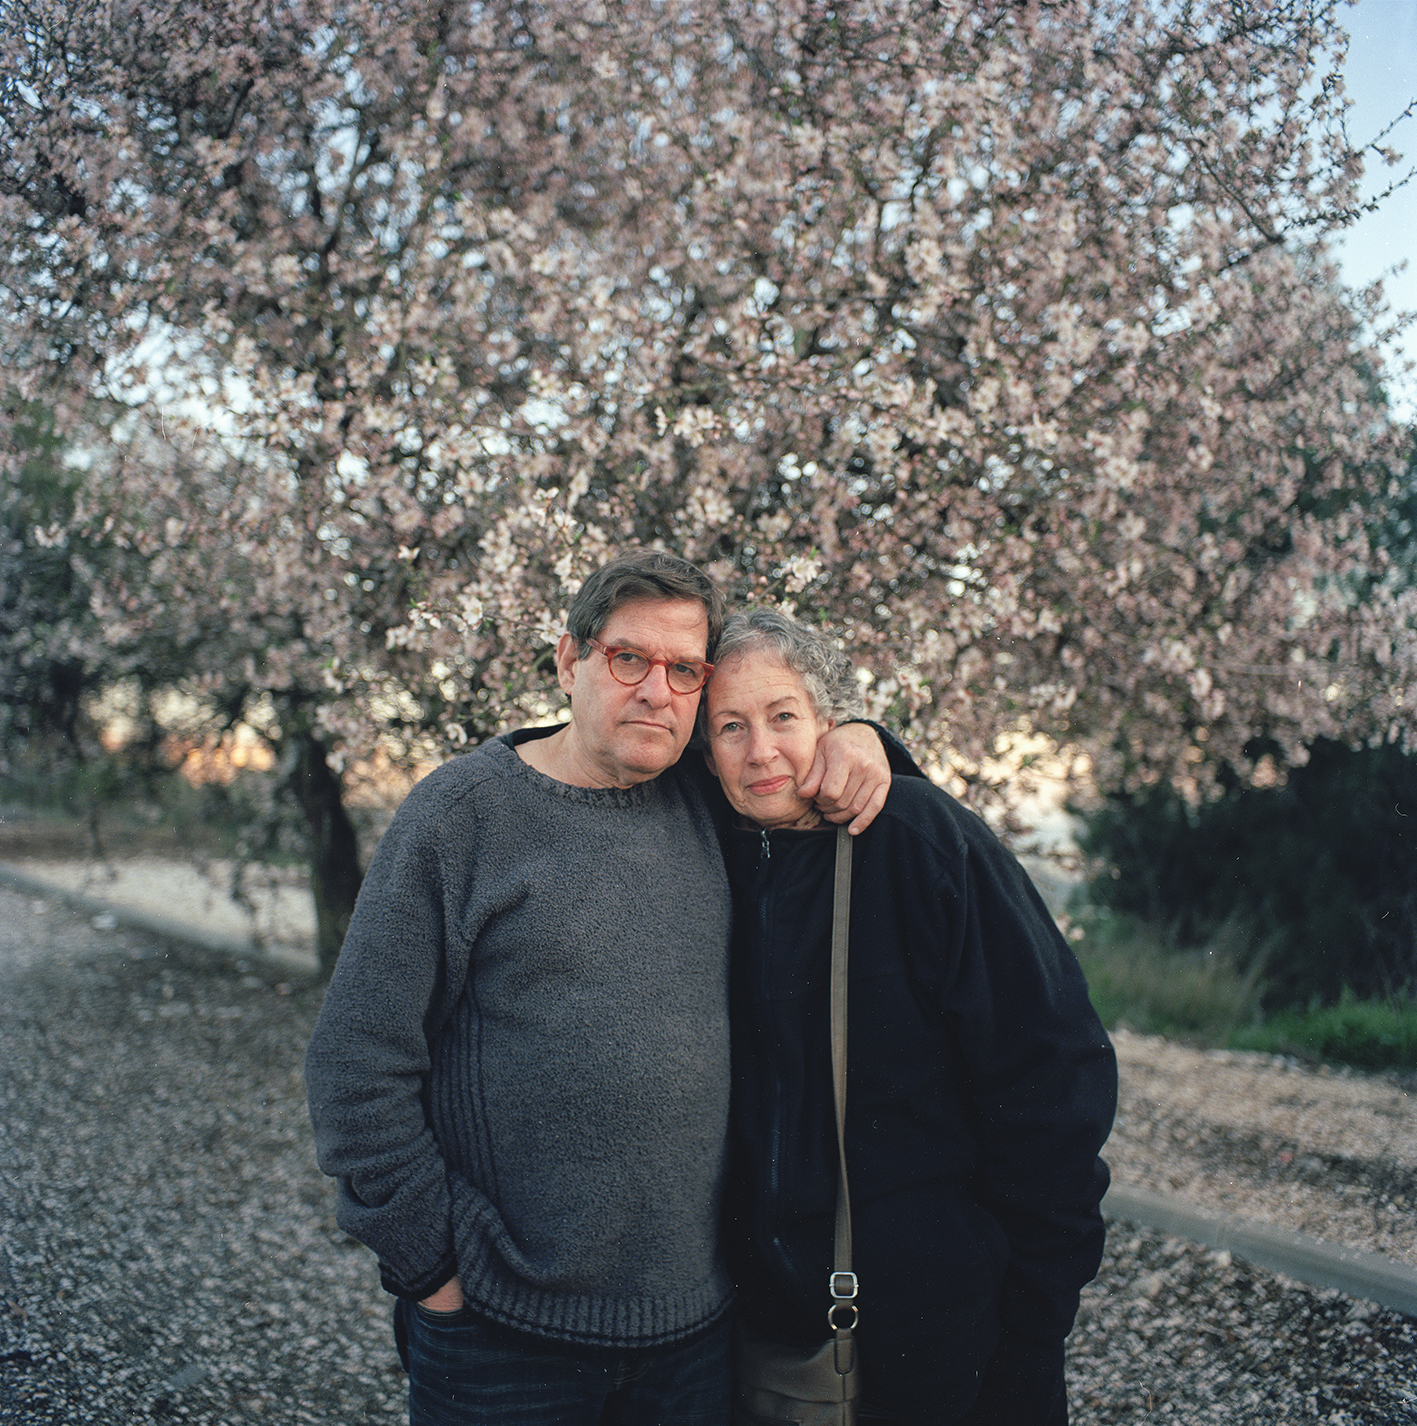 Mom and dad by the almond tree